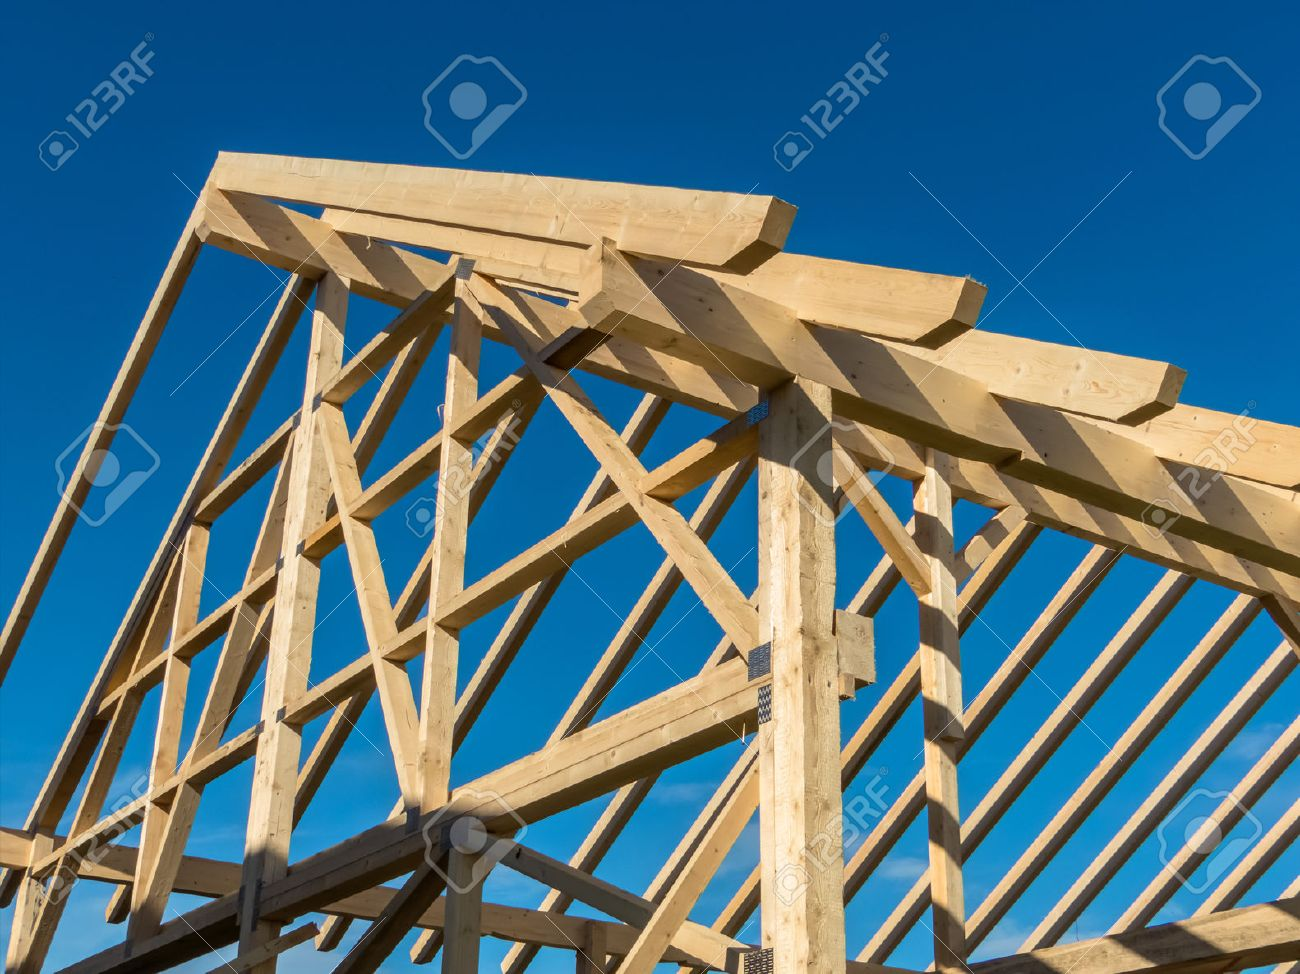 in one house a new roof is being built on a construction site. cleats, wood for roof trusses. Stock Photo - 50593384